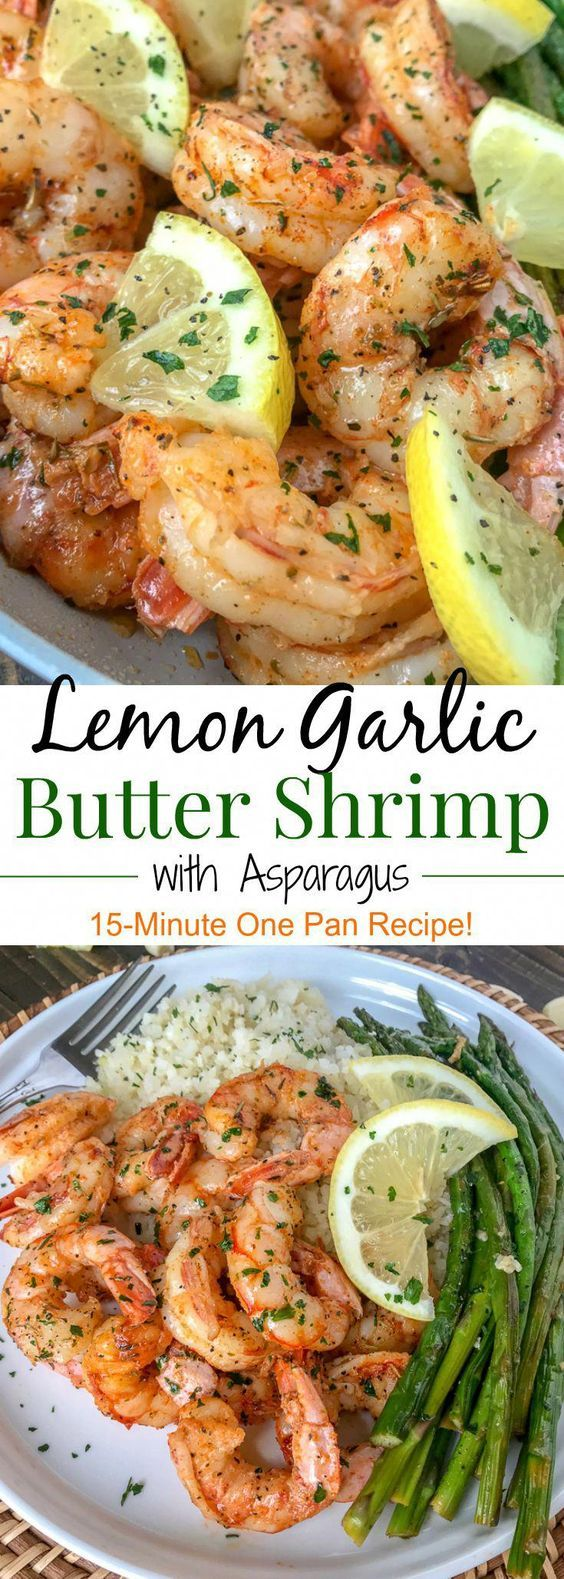 LEMON GARLIC BUTTER SHRIMP WITH ASPARAGUS #recipes #healthyfoodrecipes #food #foodporn #healthy #yummy #instafood #foodie #delicious #dinner #breakfast #dessert #lunch #vegan #cake #eatclean #homemade #diet #healthyfood #cleaneating #foodstagram